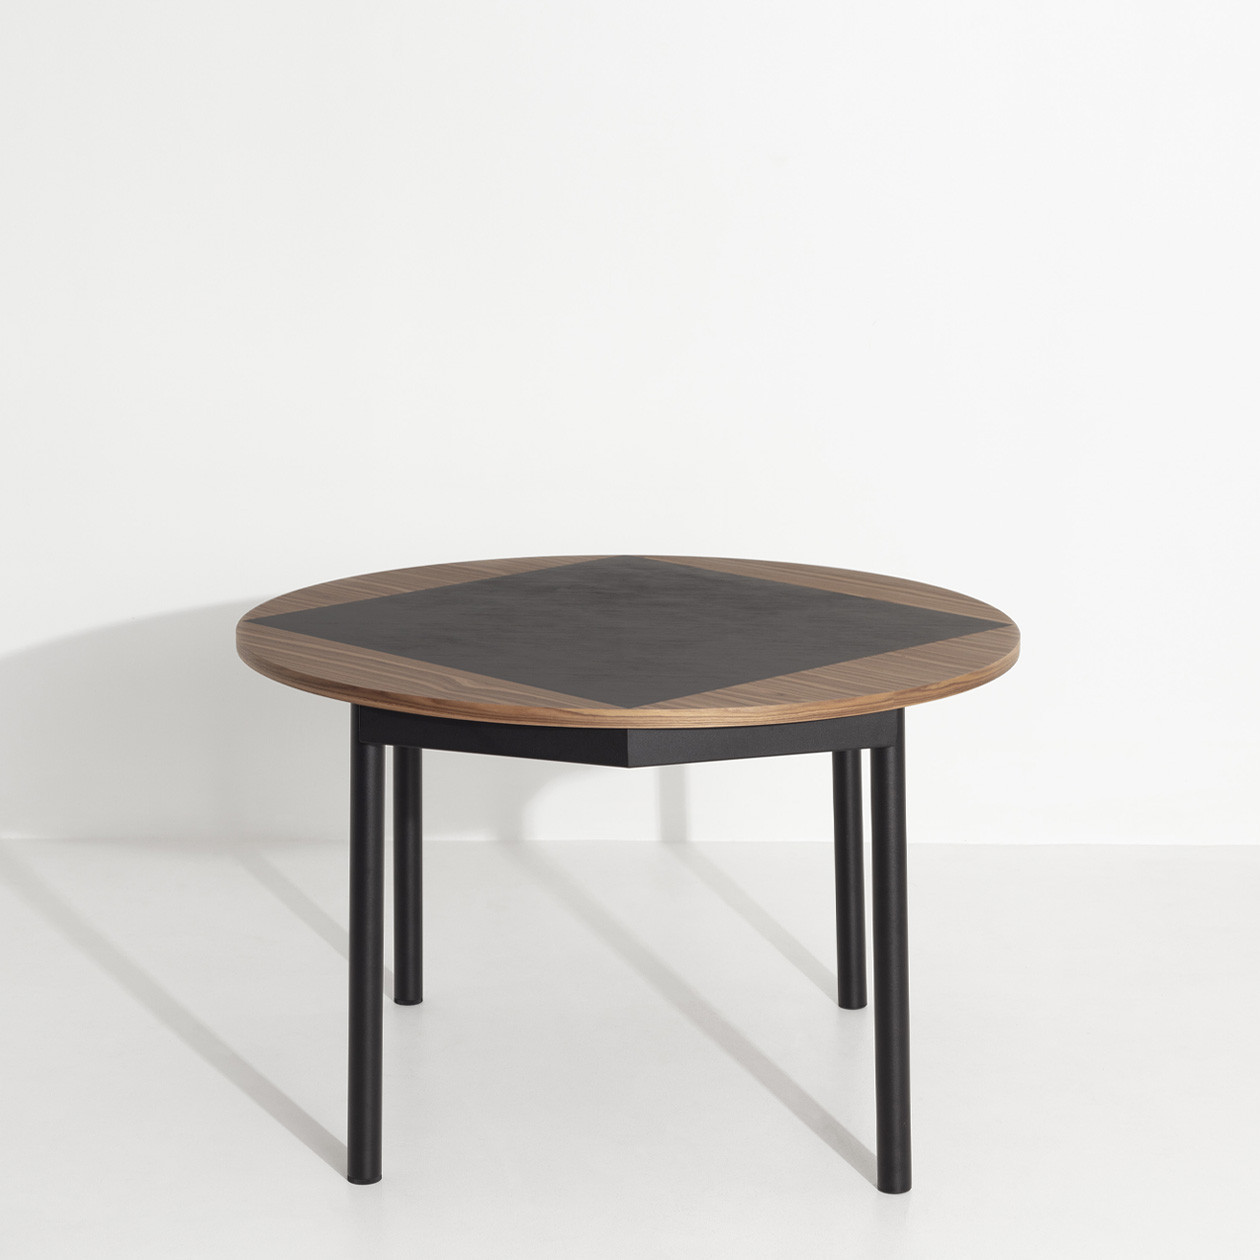 Tavla Round Wood Table - Tavla round wood table was born from the collaboration between Petite Friture team and Pool studio, a designing duo that has a faithful history with the Brand. They previously released together successful products like ISO A & ISO B side tables or the Grid sofa  Tavla inspiration comes from the personal story of Léa, who's part Iranian, and has been admiring the work on backgammon tables, Tavla being the Iranian word for backgammon.   | Matter of Stuff